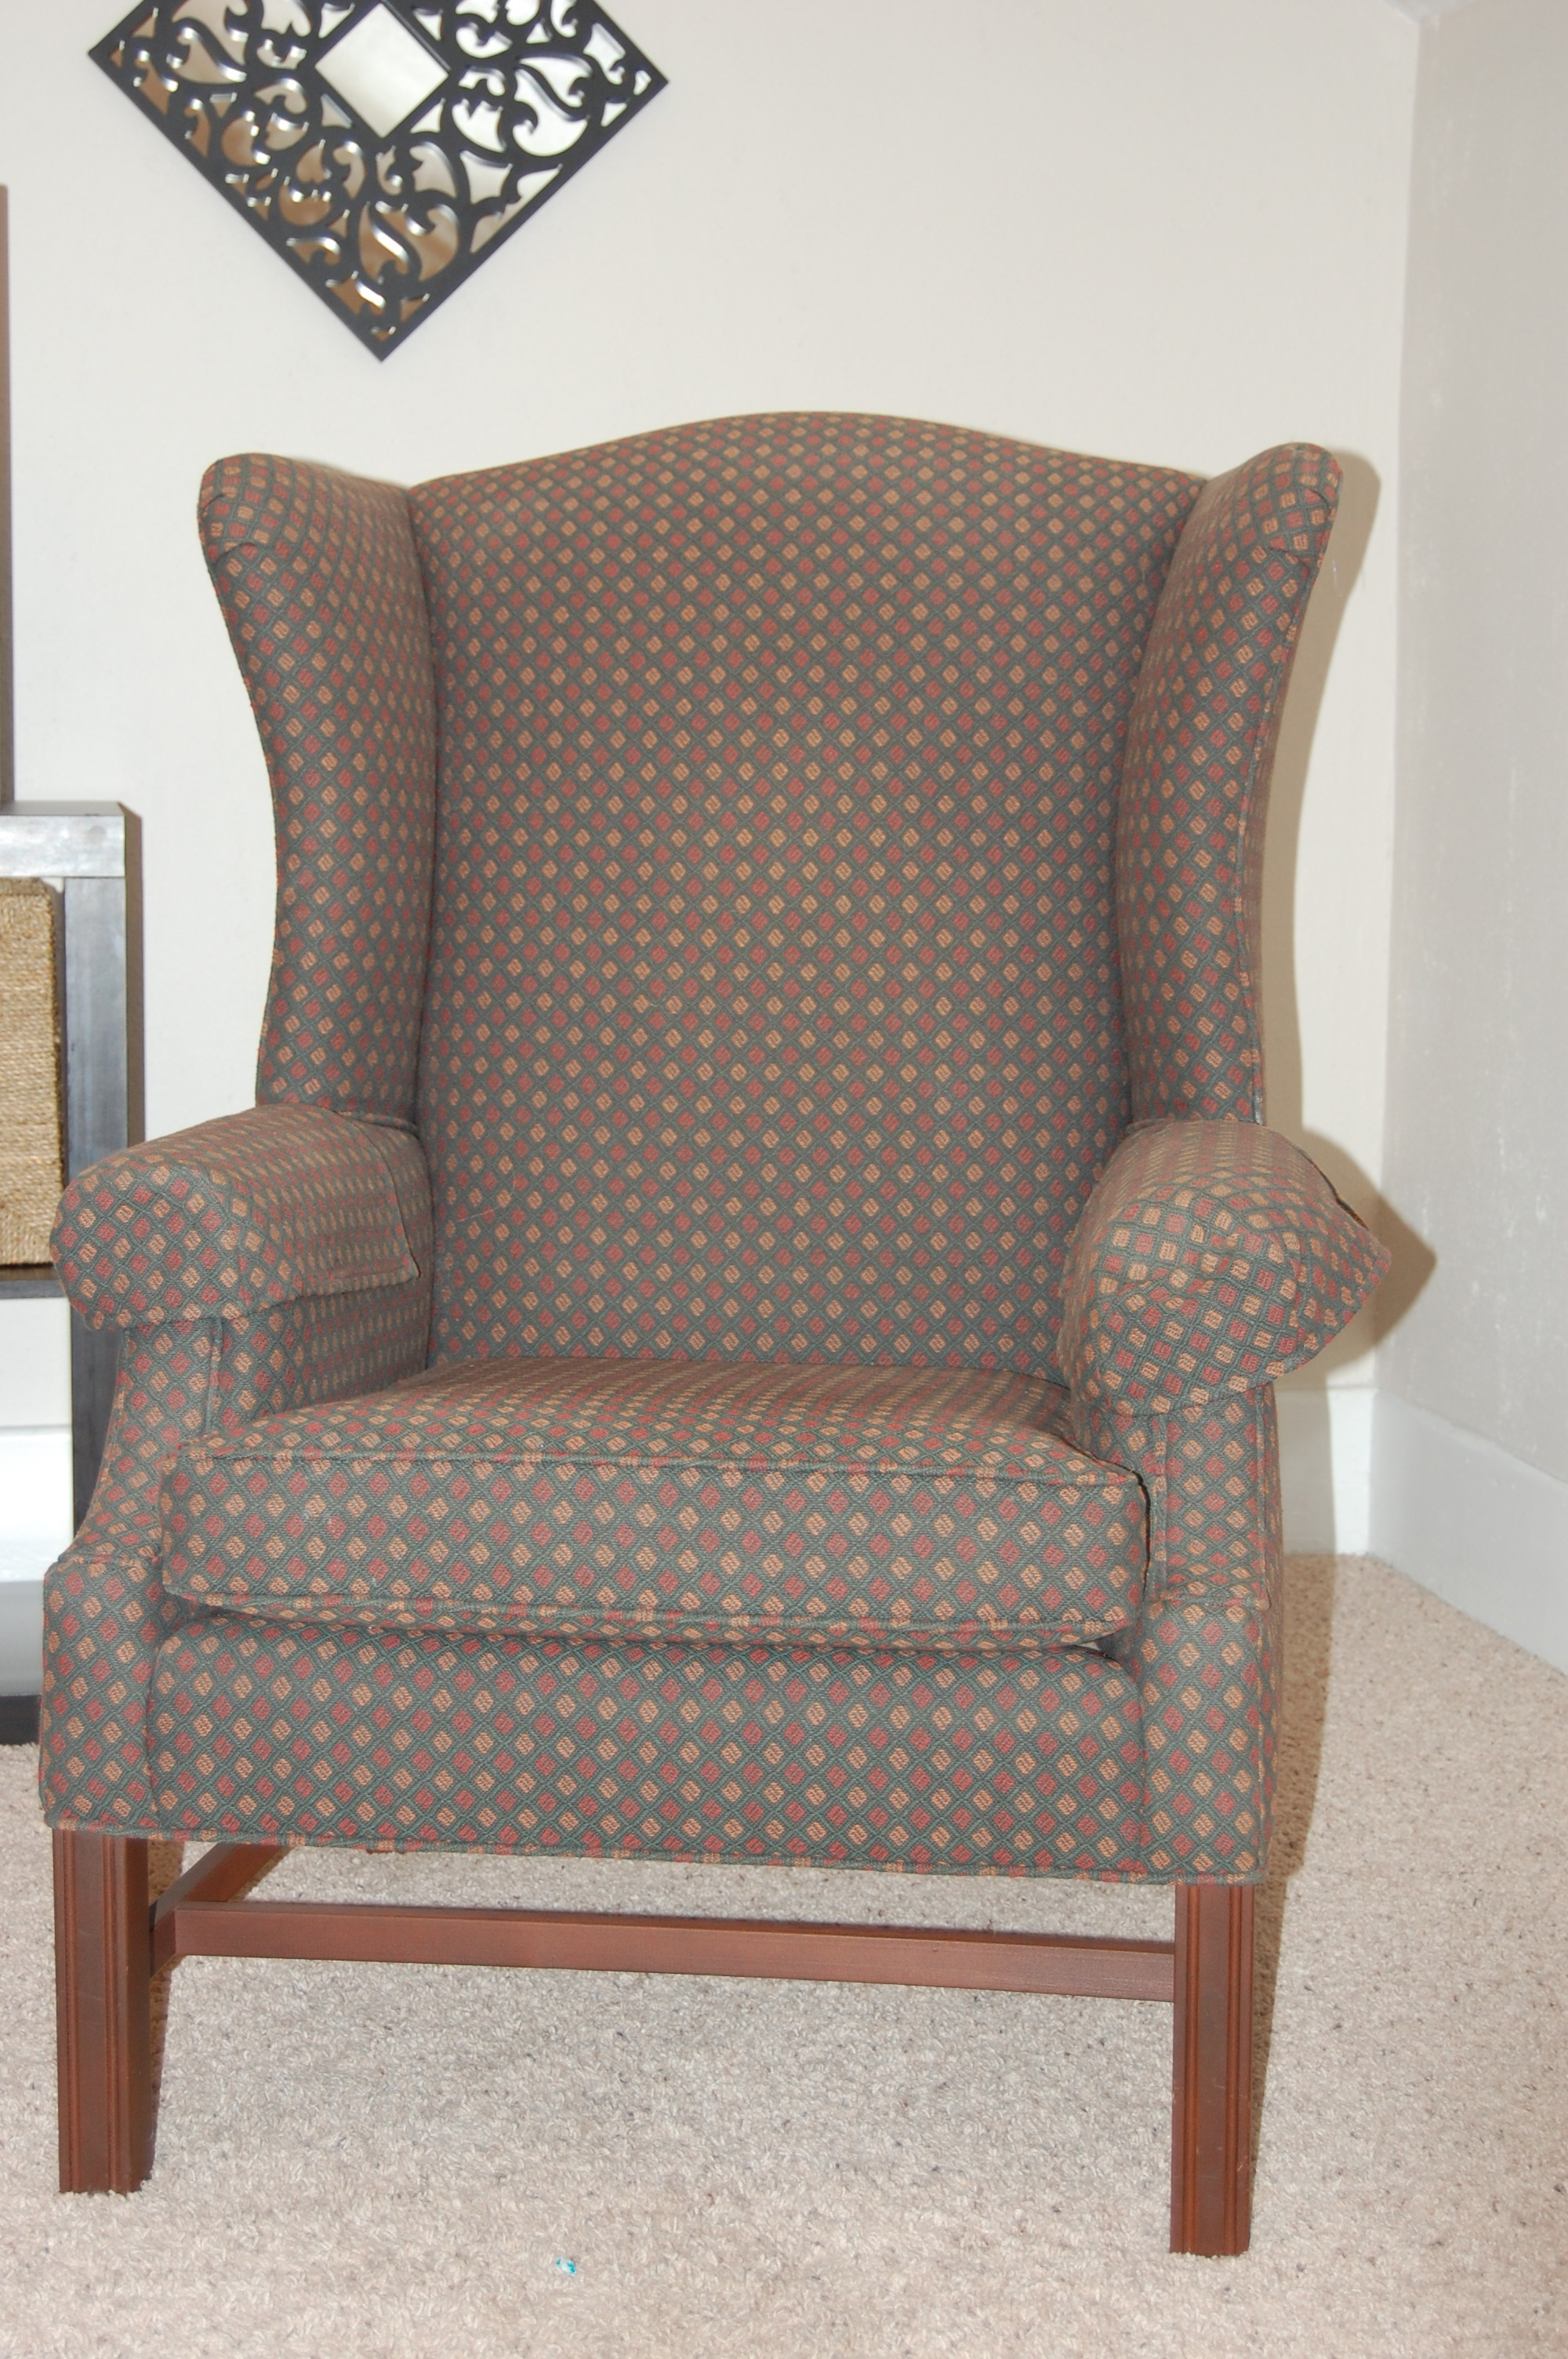 Best wing back chair with Solid Strong wood Furniture Design for Dining chair and Living Room Chair Ideas